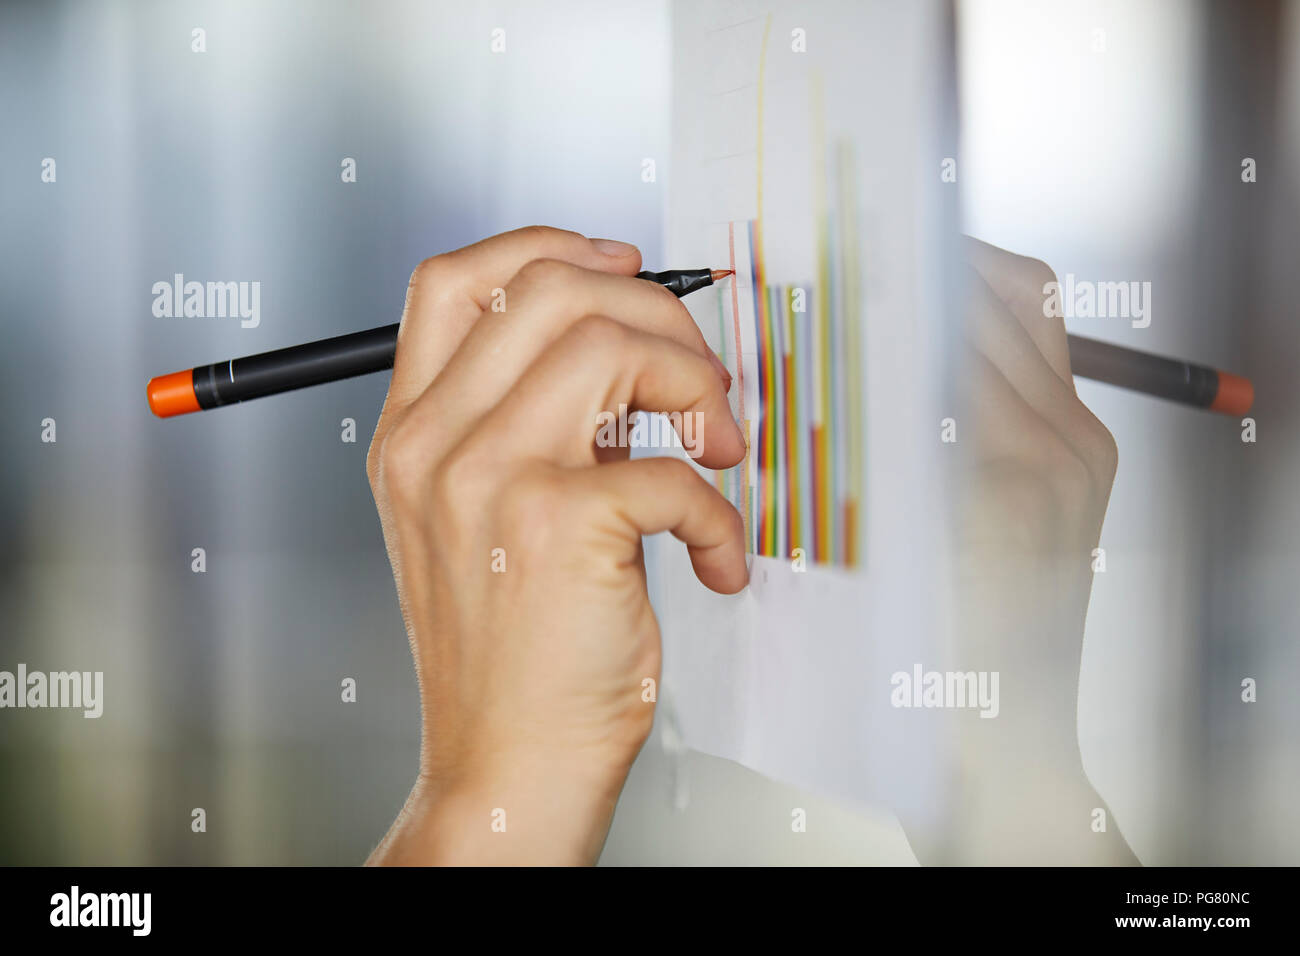 Hand drawing bar charts on paper at glass pane - Stock Image